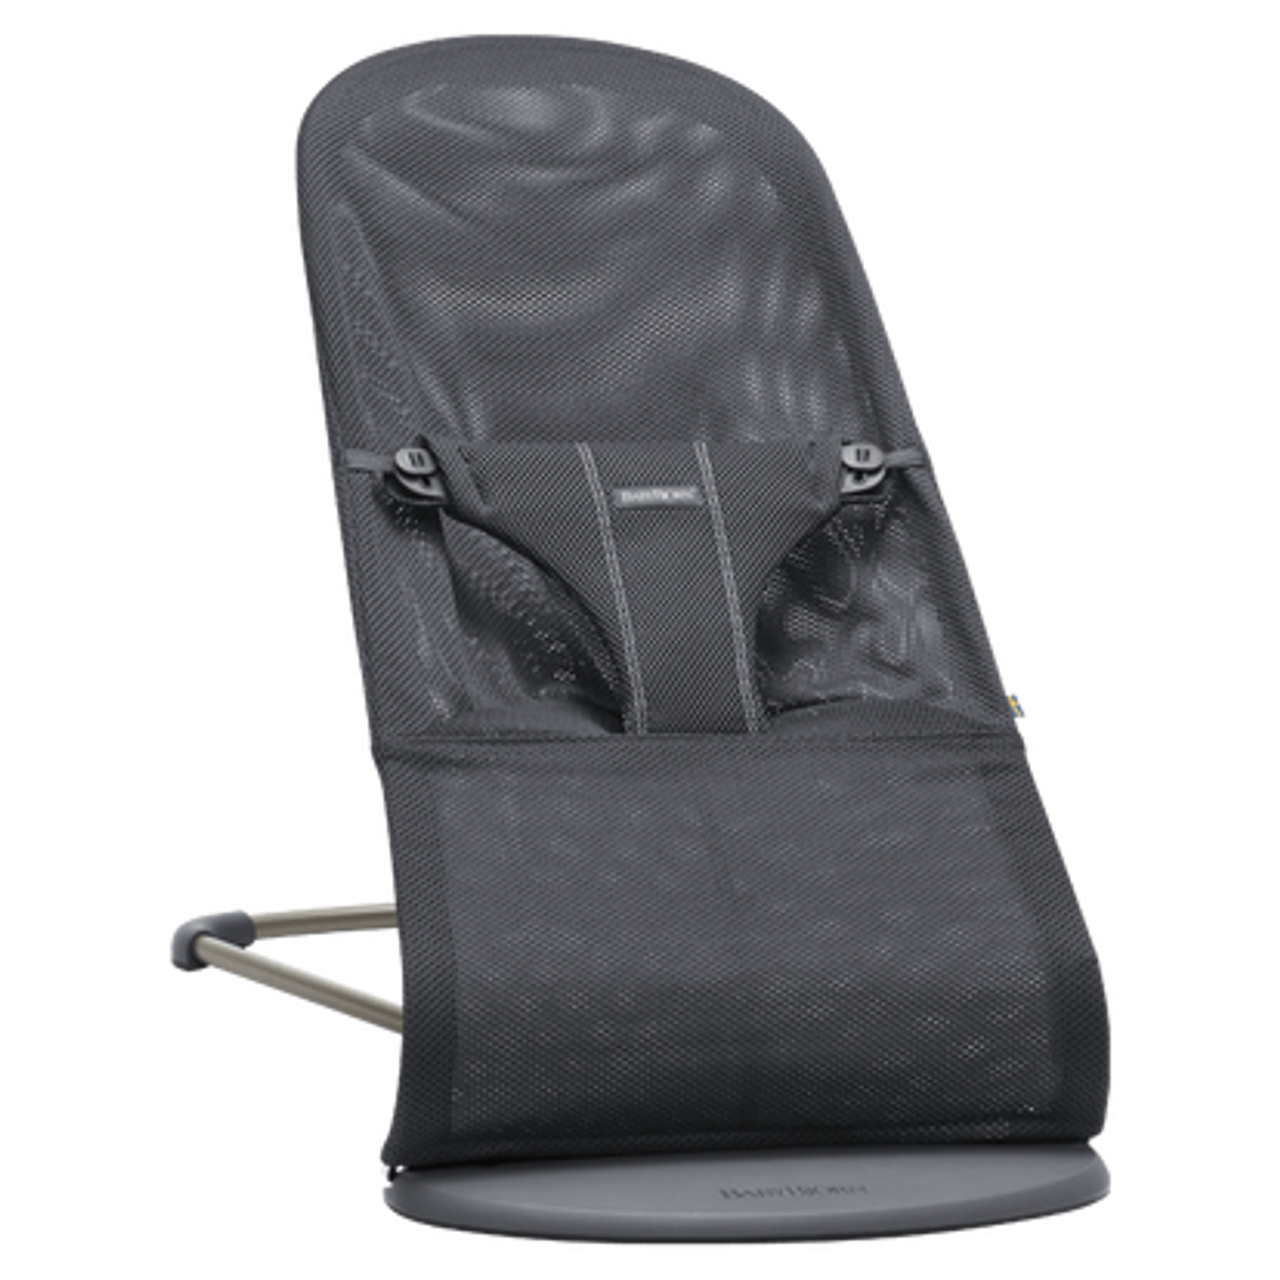 Baby Bjorn Mesh Bliss Bouncer Anthracite at Baby Barn Discounts